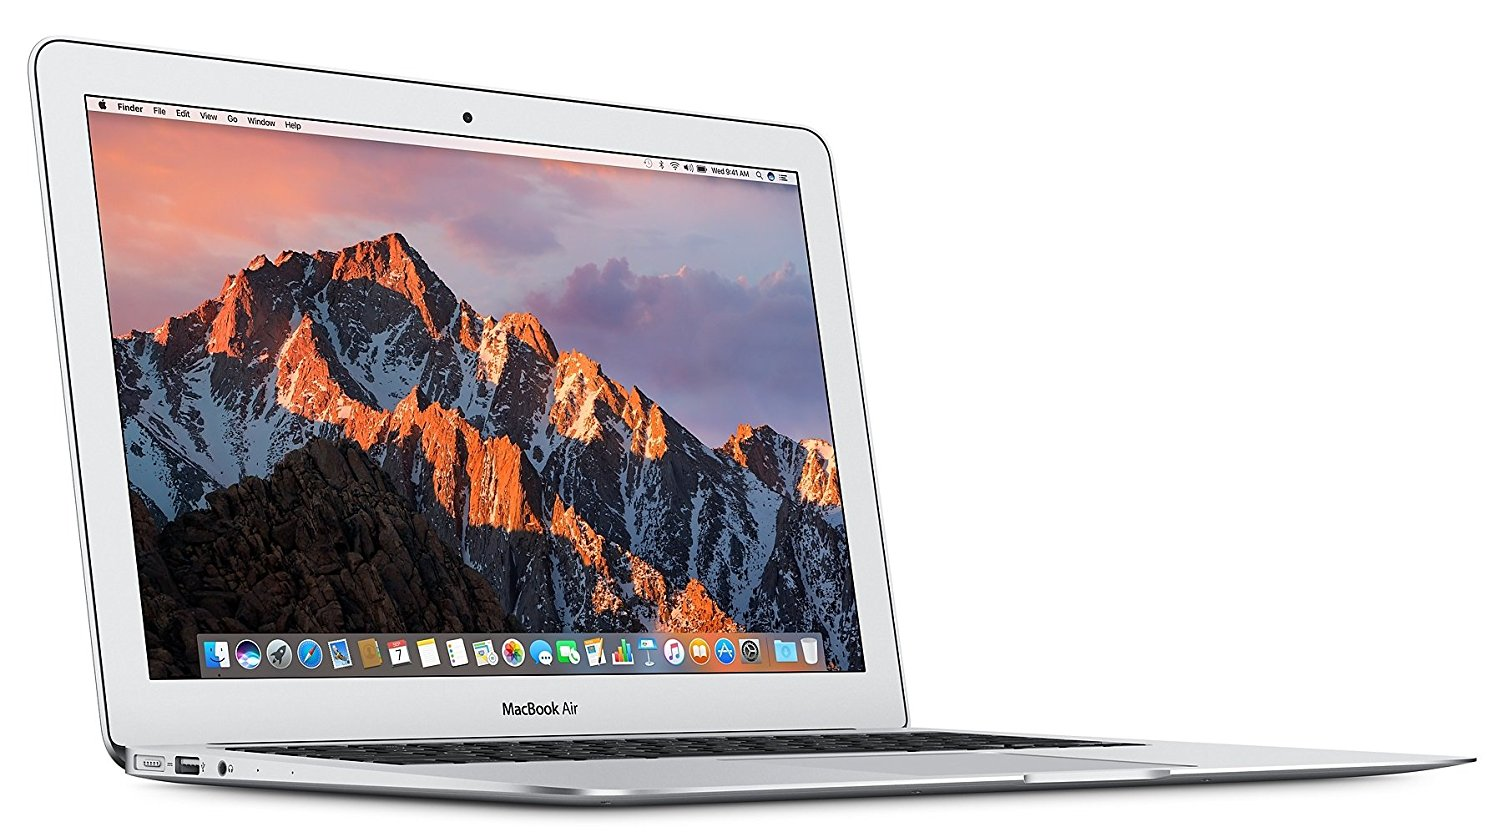 APPLE 13.3″ MacBook Air 1.8GHz Dual-Core Intel Core i5 with Inateck Case + MQD32LL/A